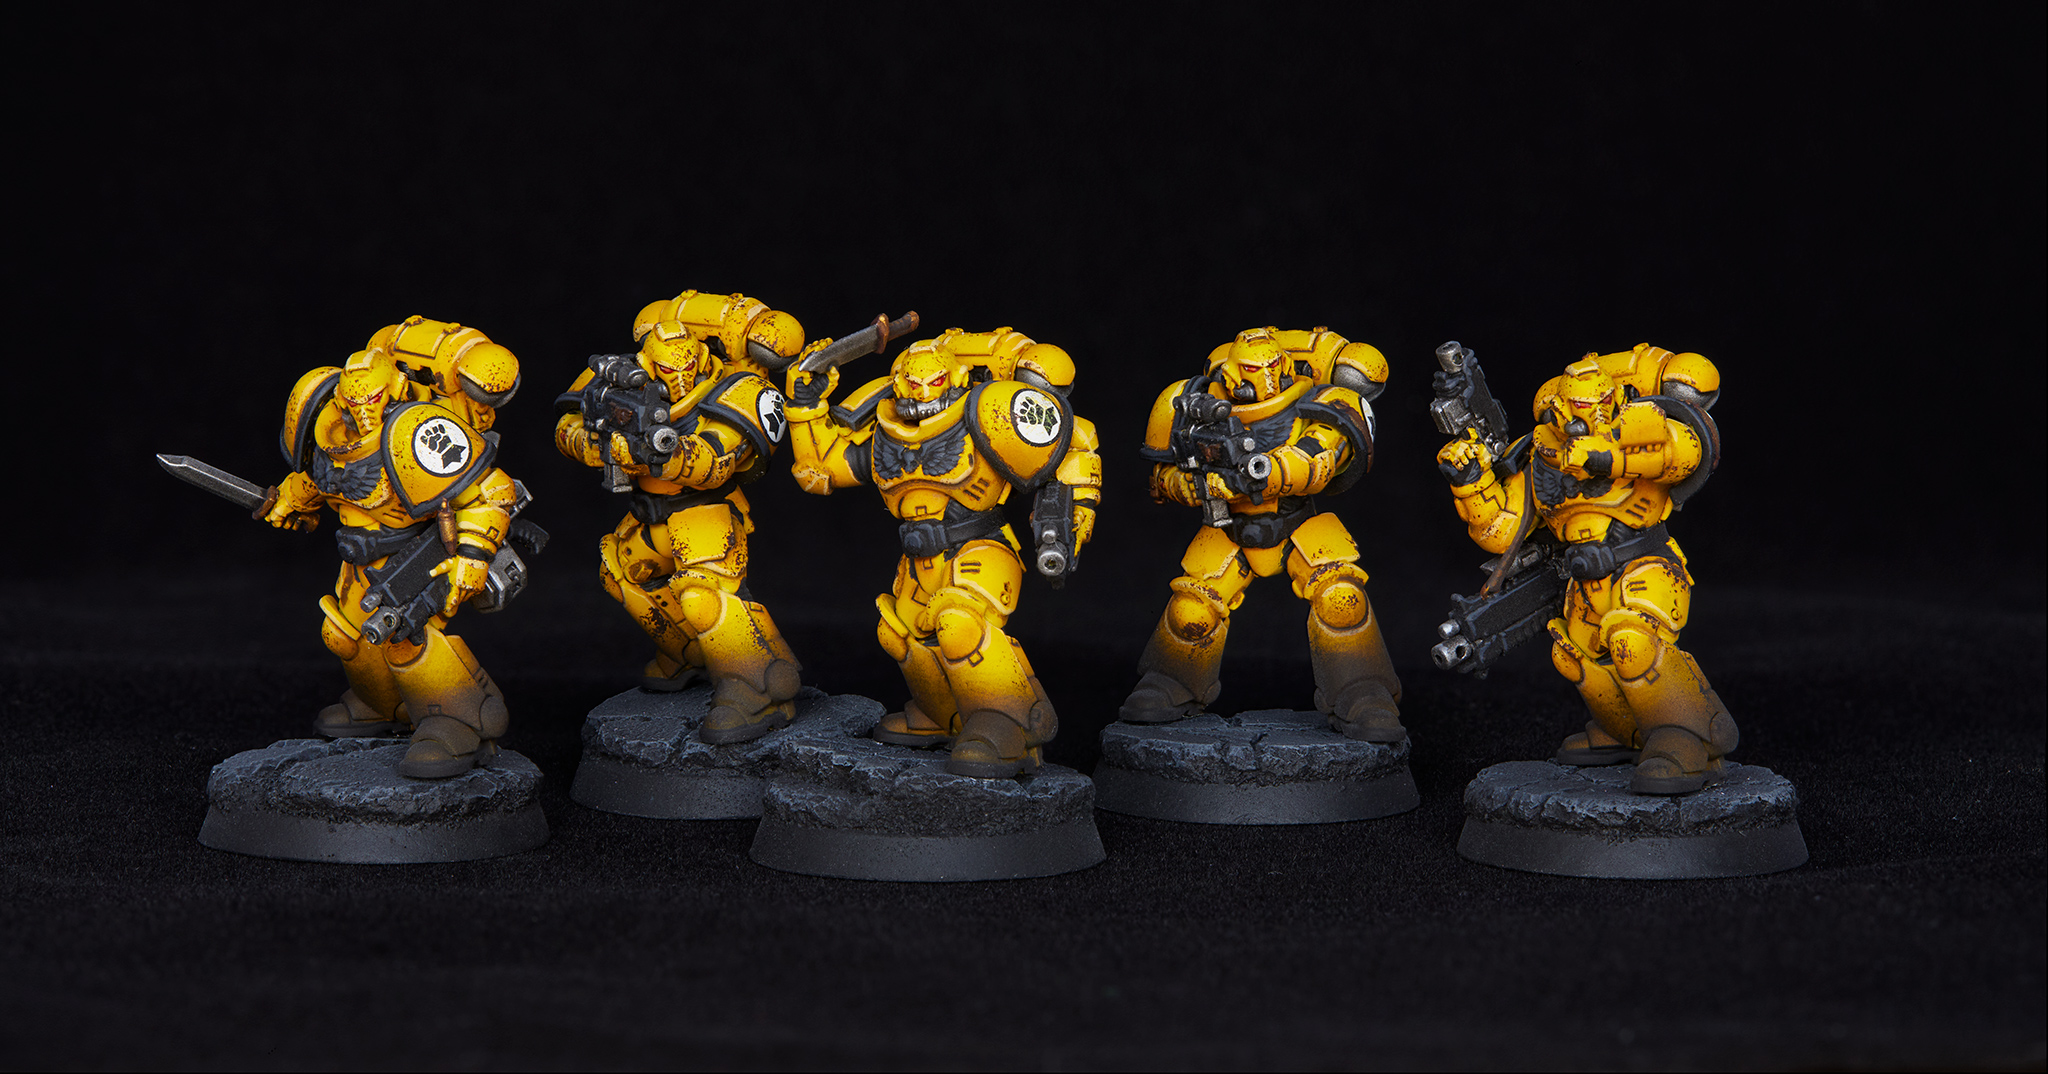 Imperial Fist Intercessors